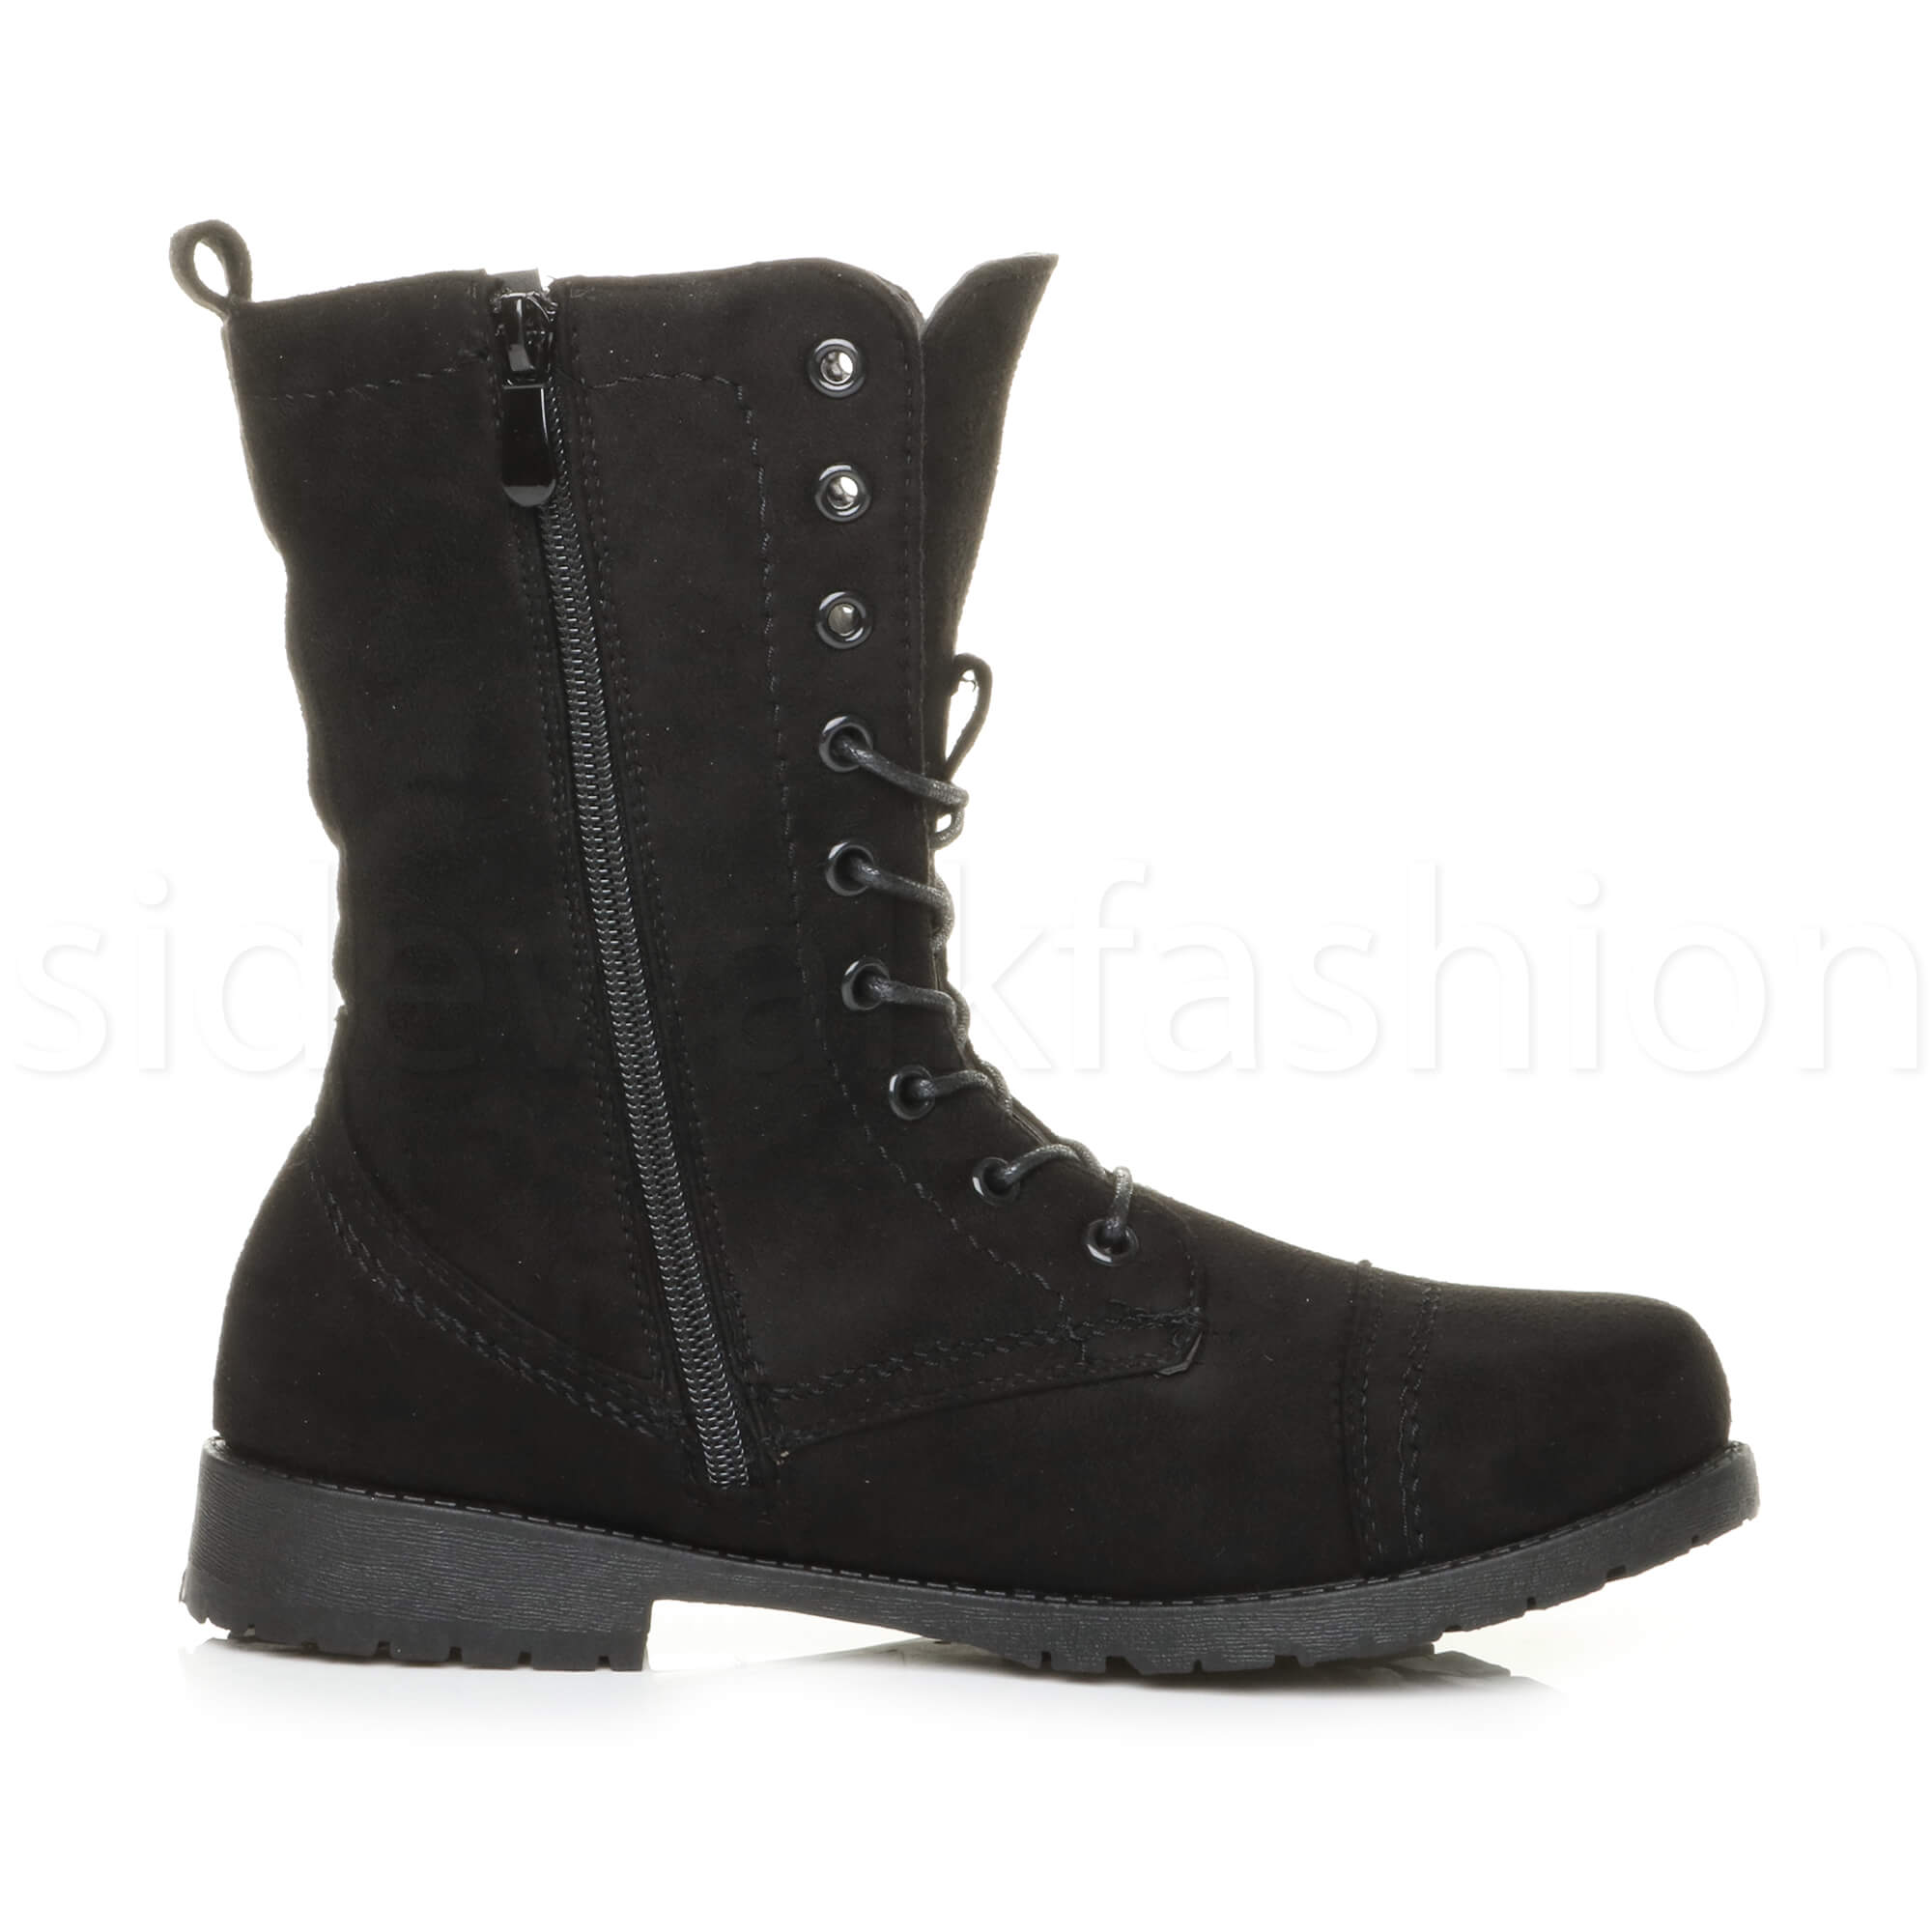 Womens-ladies-low-heel-flat-lace-up-zip-combat-biker-military-ankle-boots-size thumbnail 68